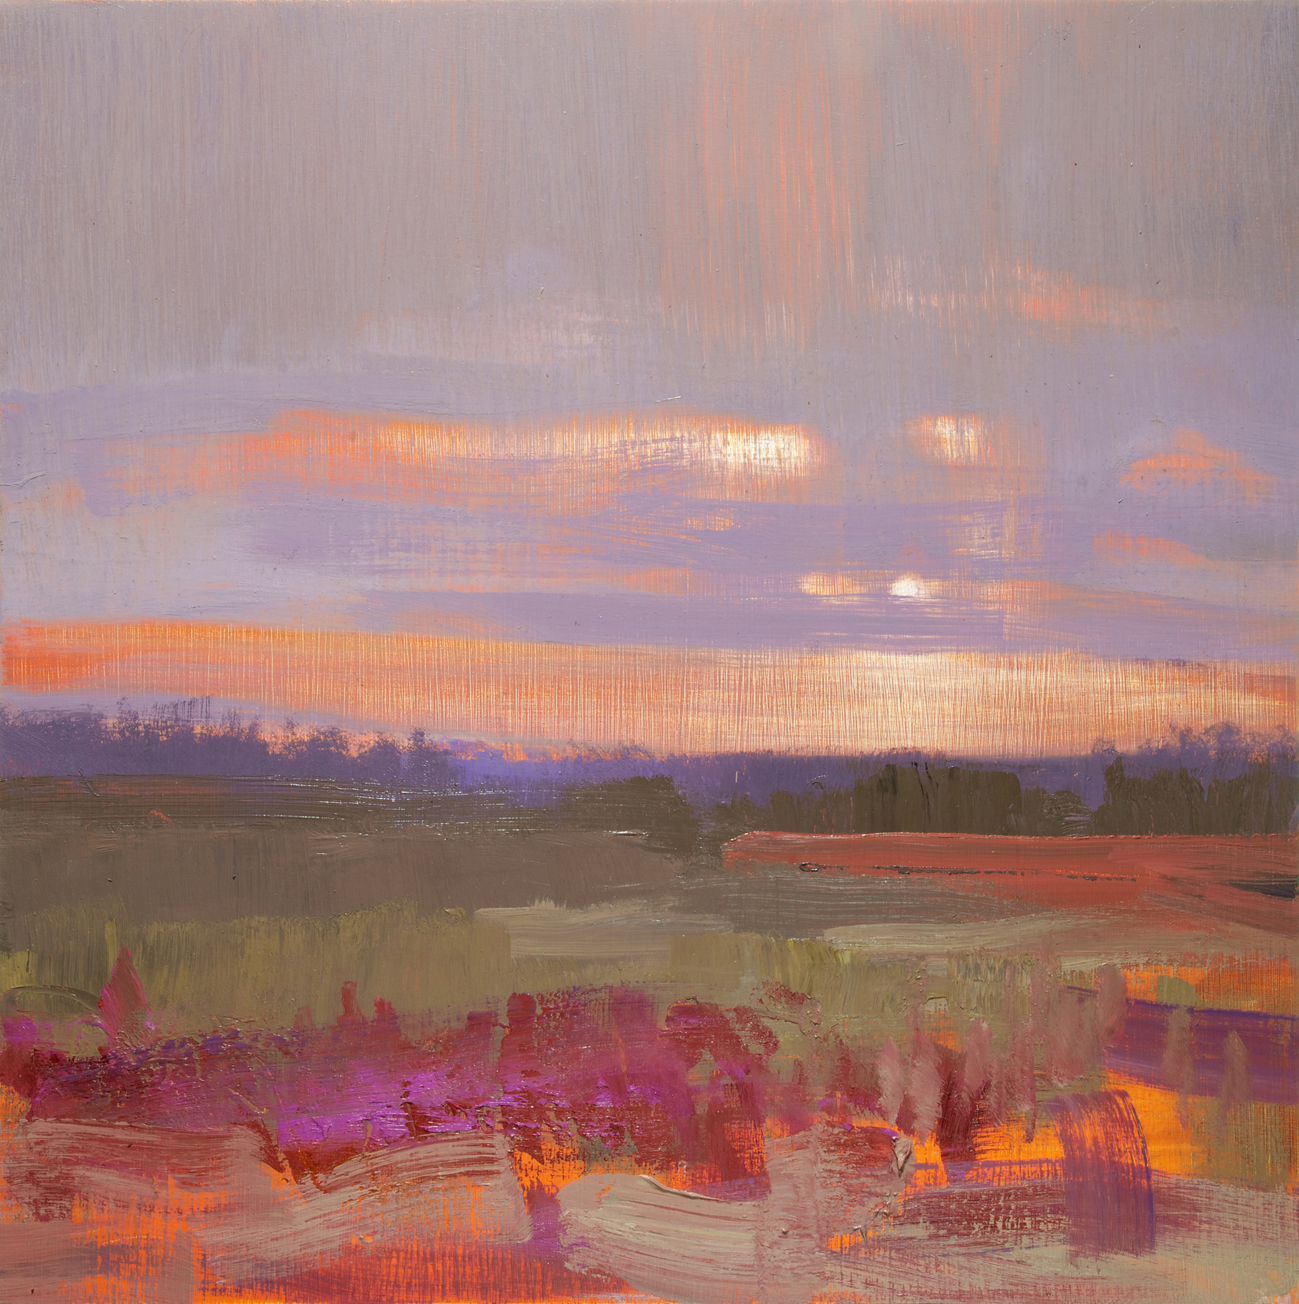 David Scott Moore  Title: Panoramic Landscape, New Forest II  Size: 46 x 46 cm  Medium: Oil on birch panel  Price: £1400   Buy Now